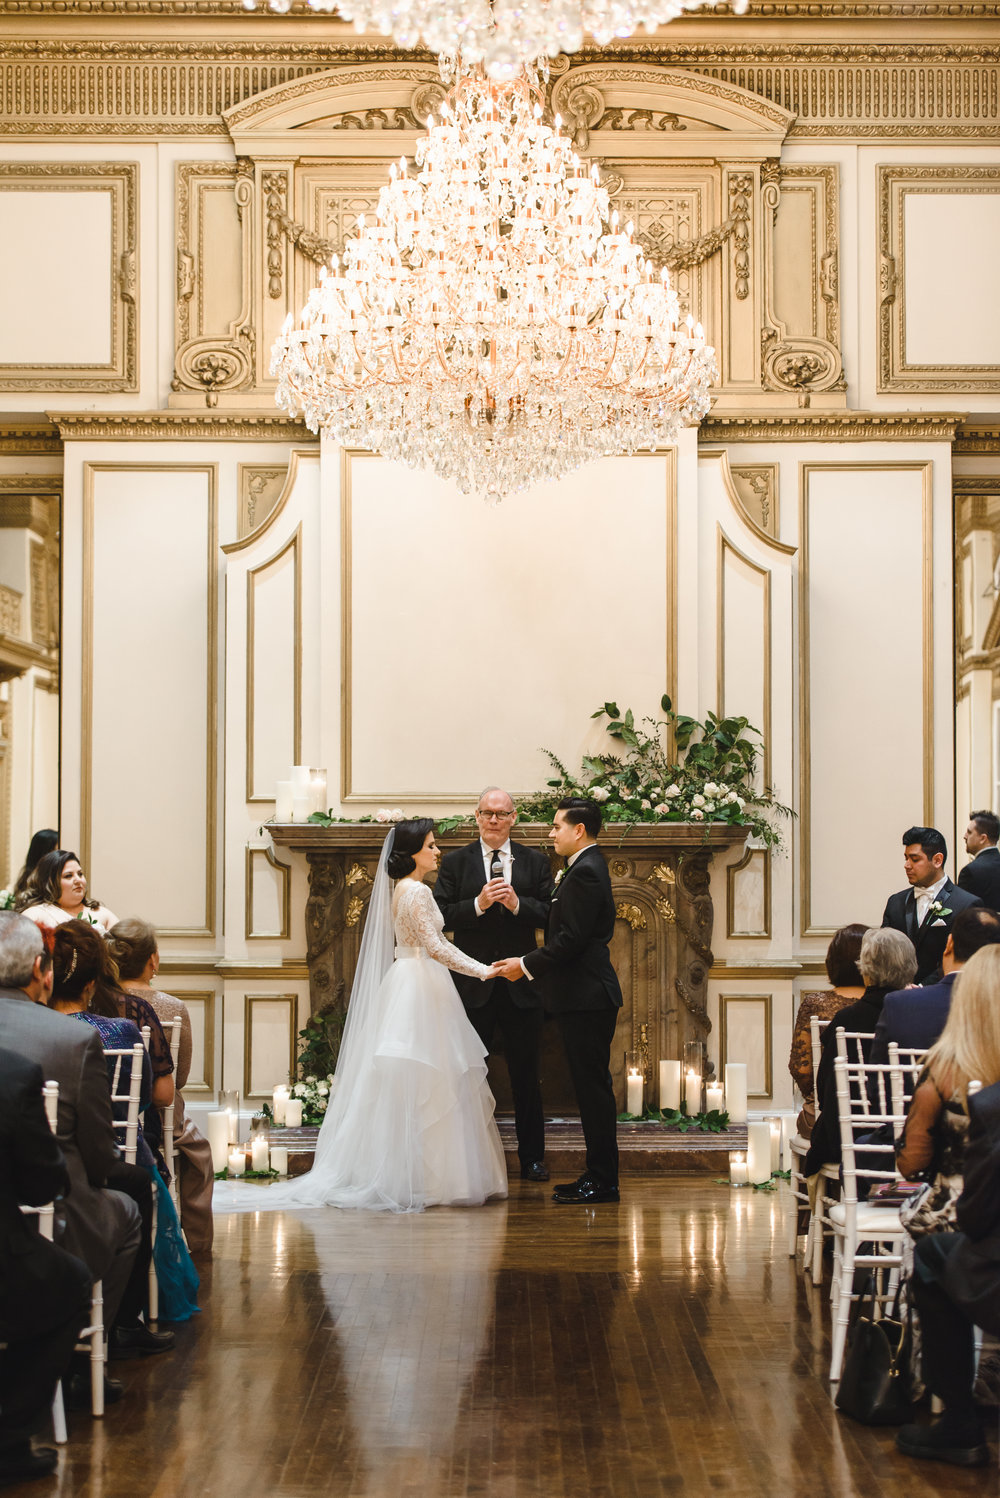 fireplace wedding ceremony with florals at Alexandria Ballroom #lrqcfloral #dtlawedding.jpg